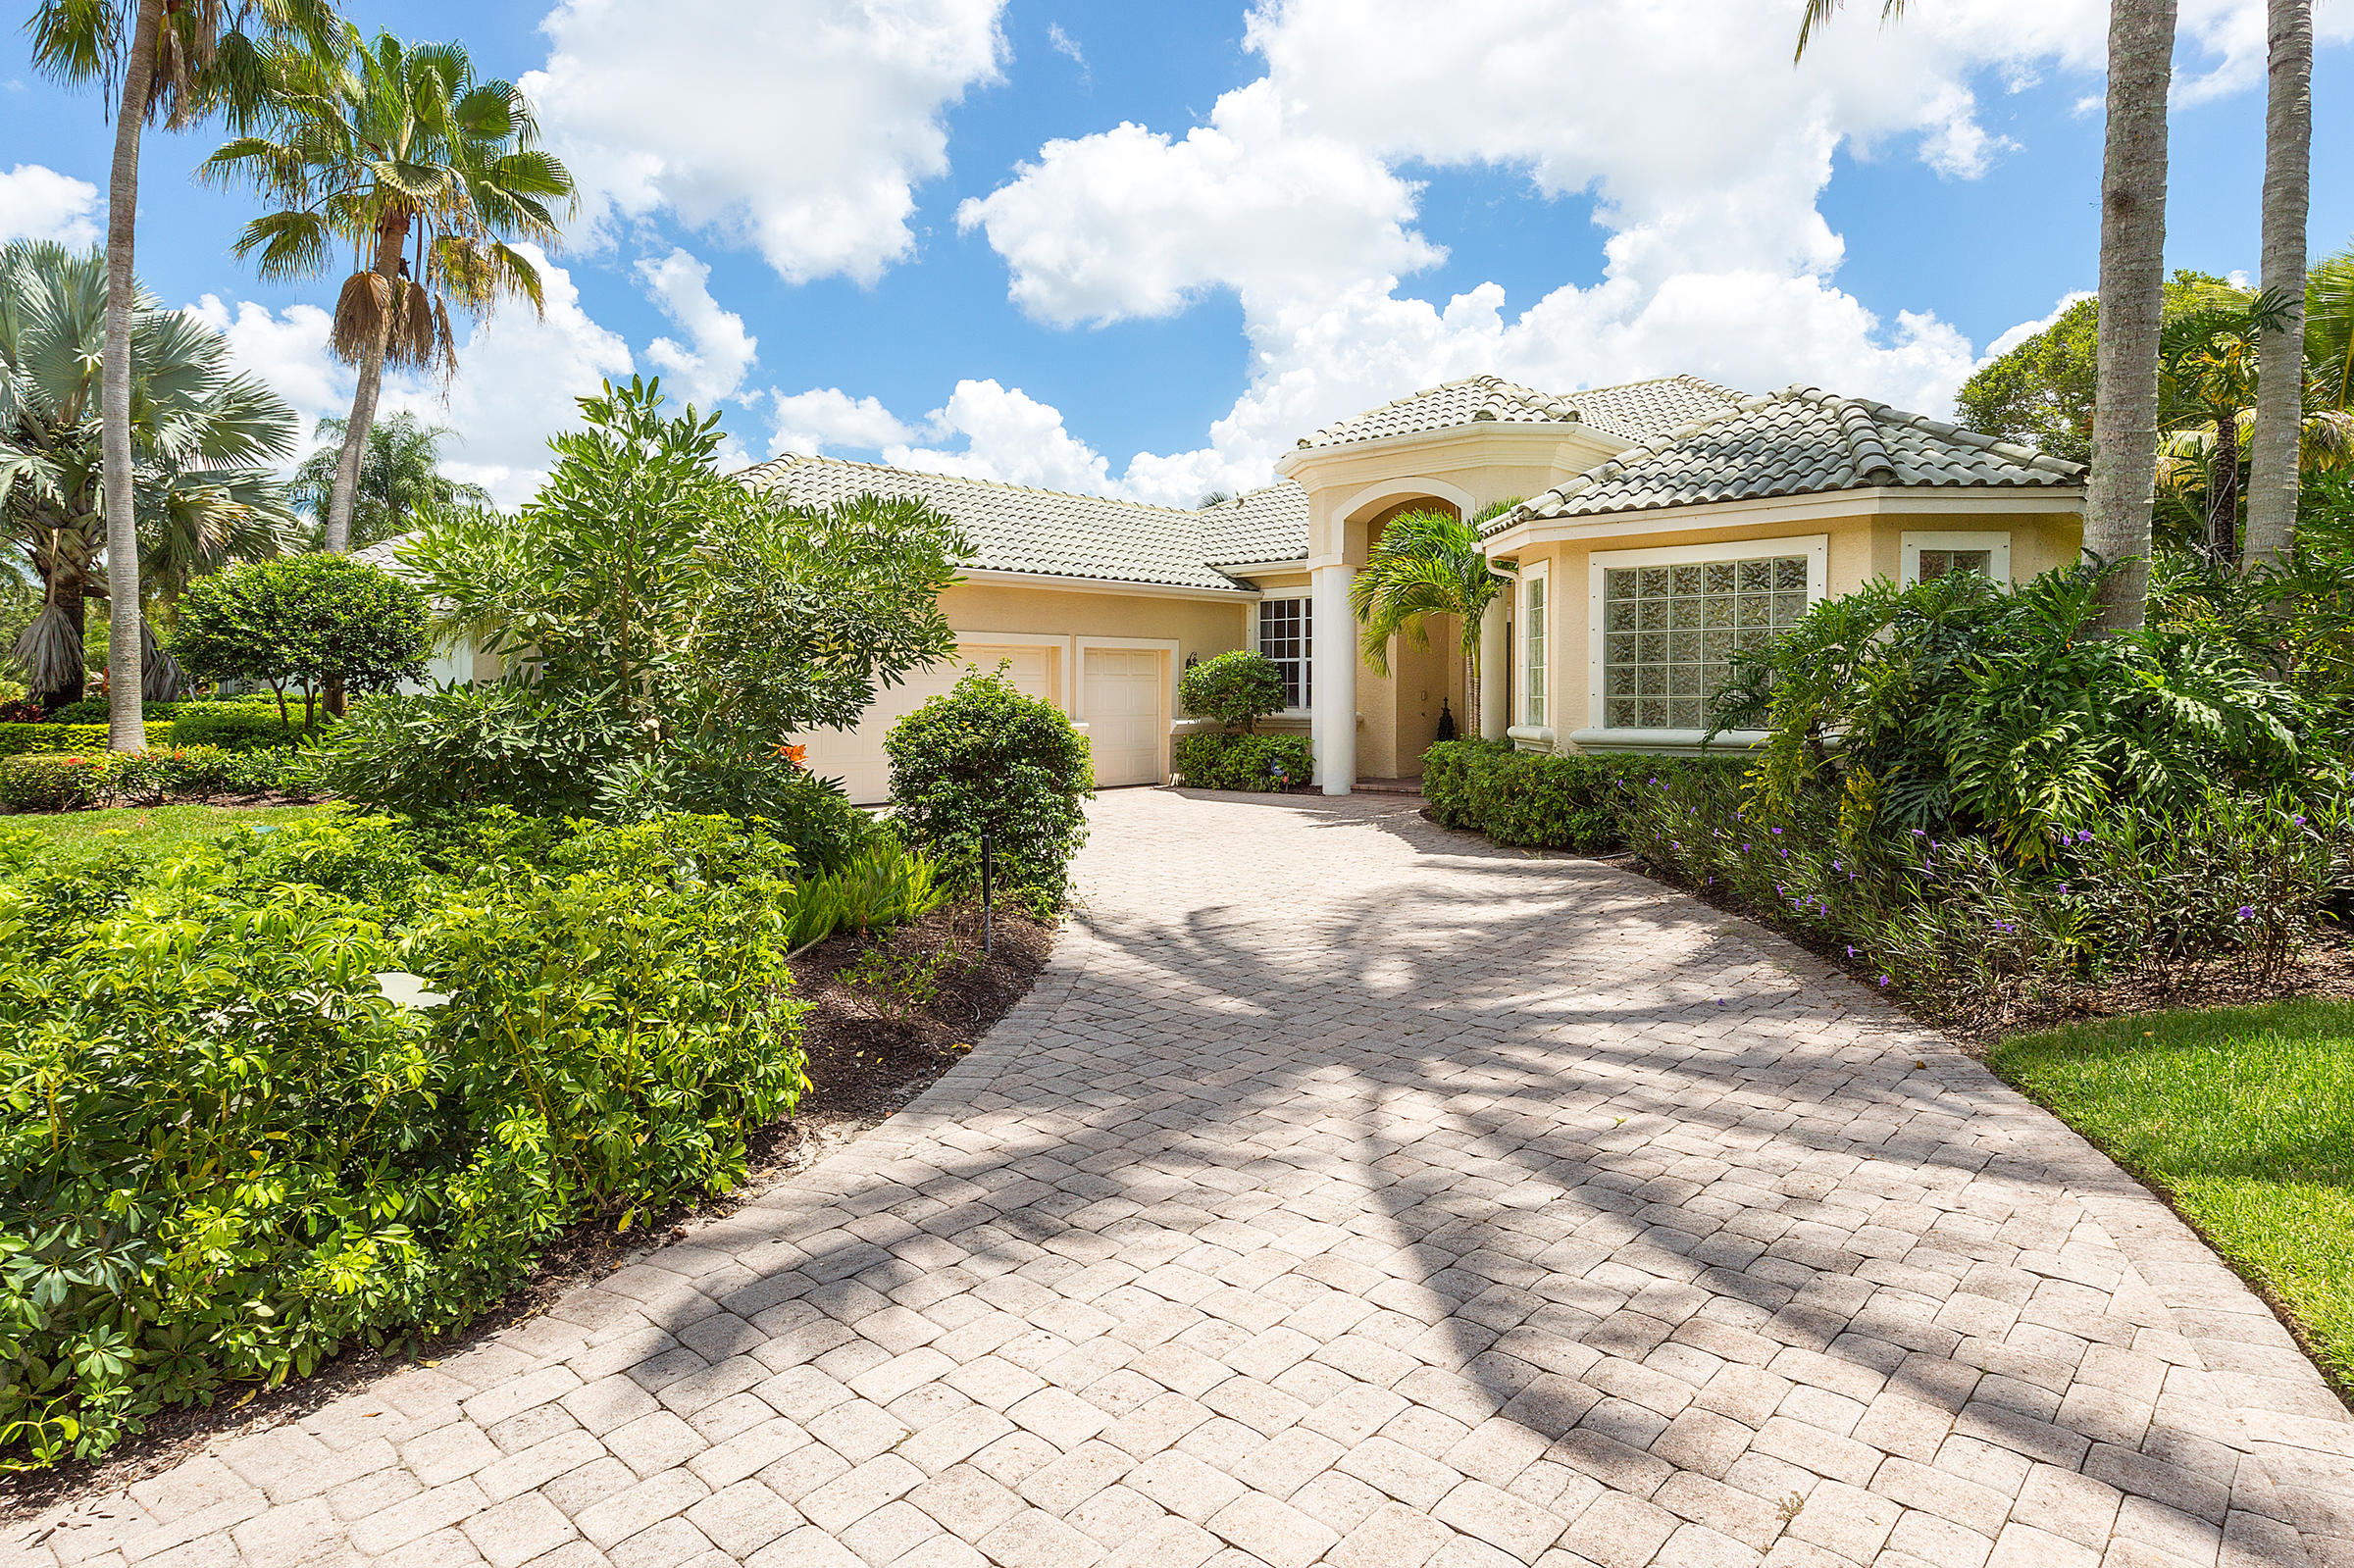 12480 Sunnydale Drive, Wellington, Florida 33414, 4 Bedrooms Bedrooms, ,4 BathroomsBathrooms,Single Family,For Sale,Palm Beach Polo and Country Club,Sunnydale,RX-10557703